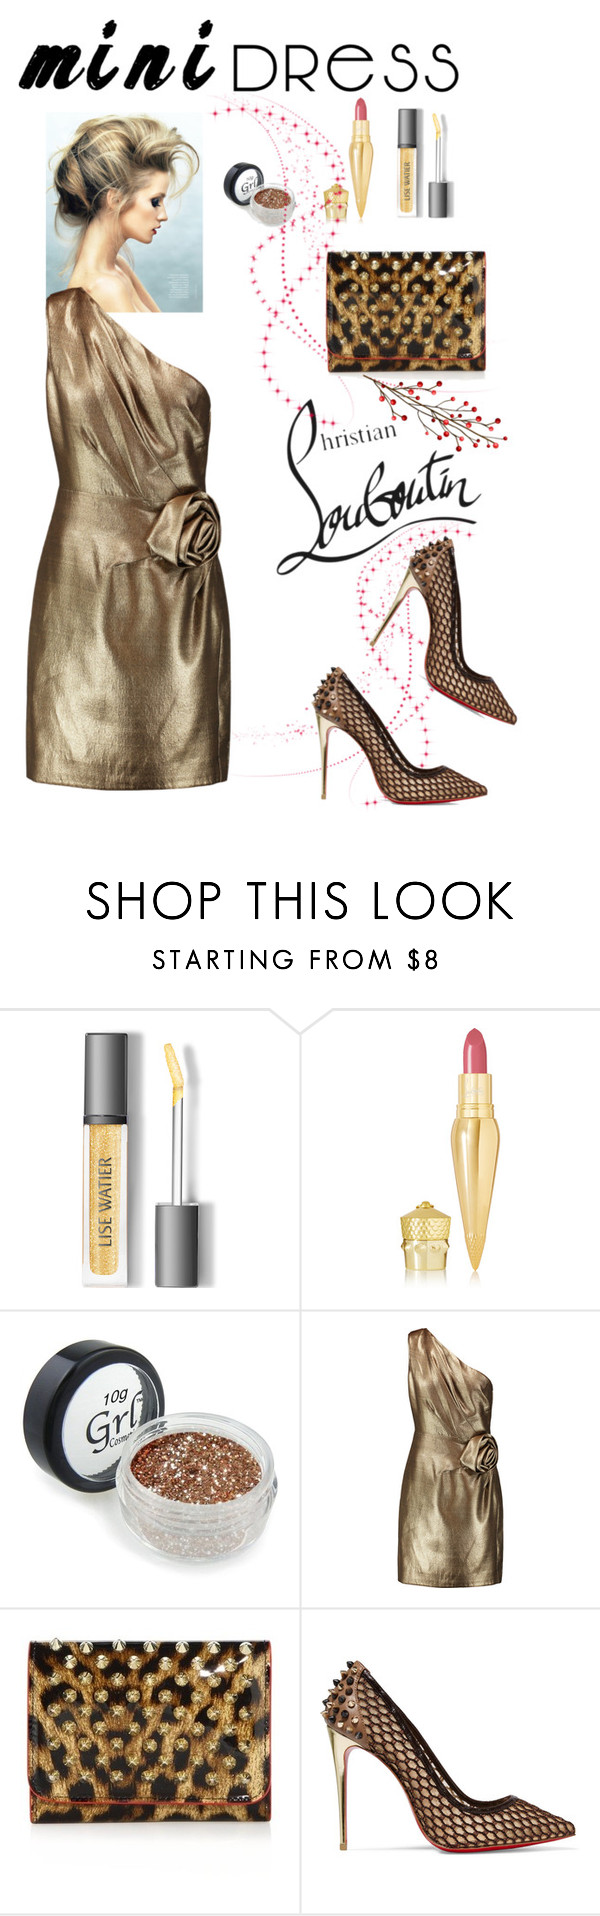 """""""Mini Dress"""" by belladonnasjoy ❤ liked on Polyvore featuring Christian Louboutin, Lumière, Halston Heritage and minidress"""